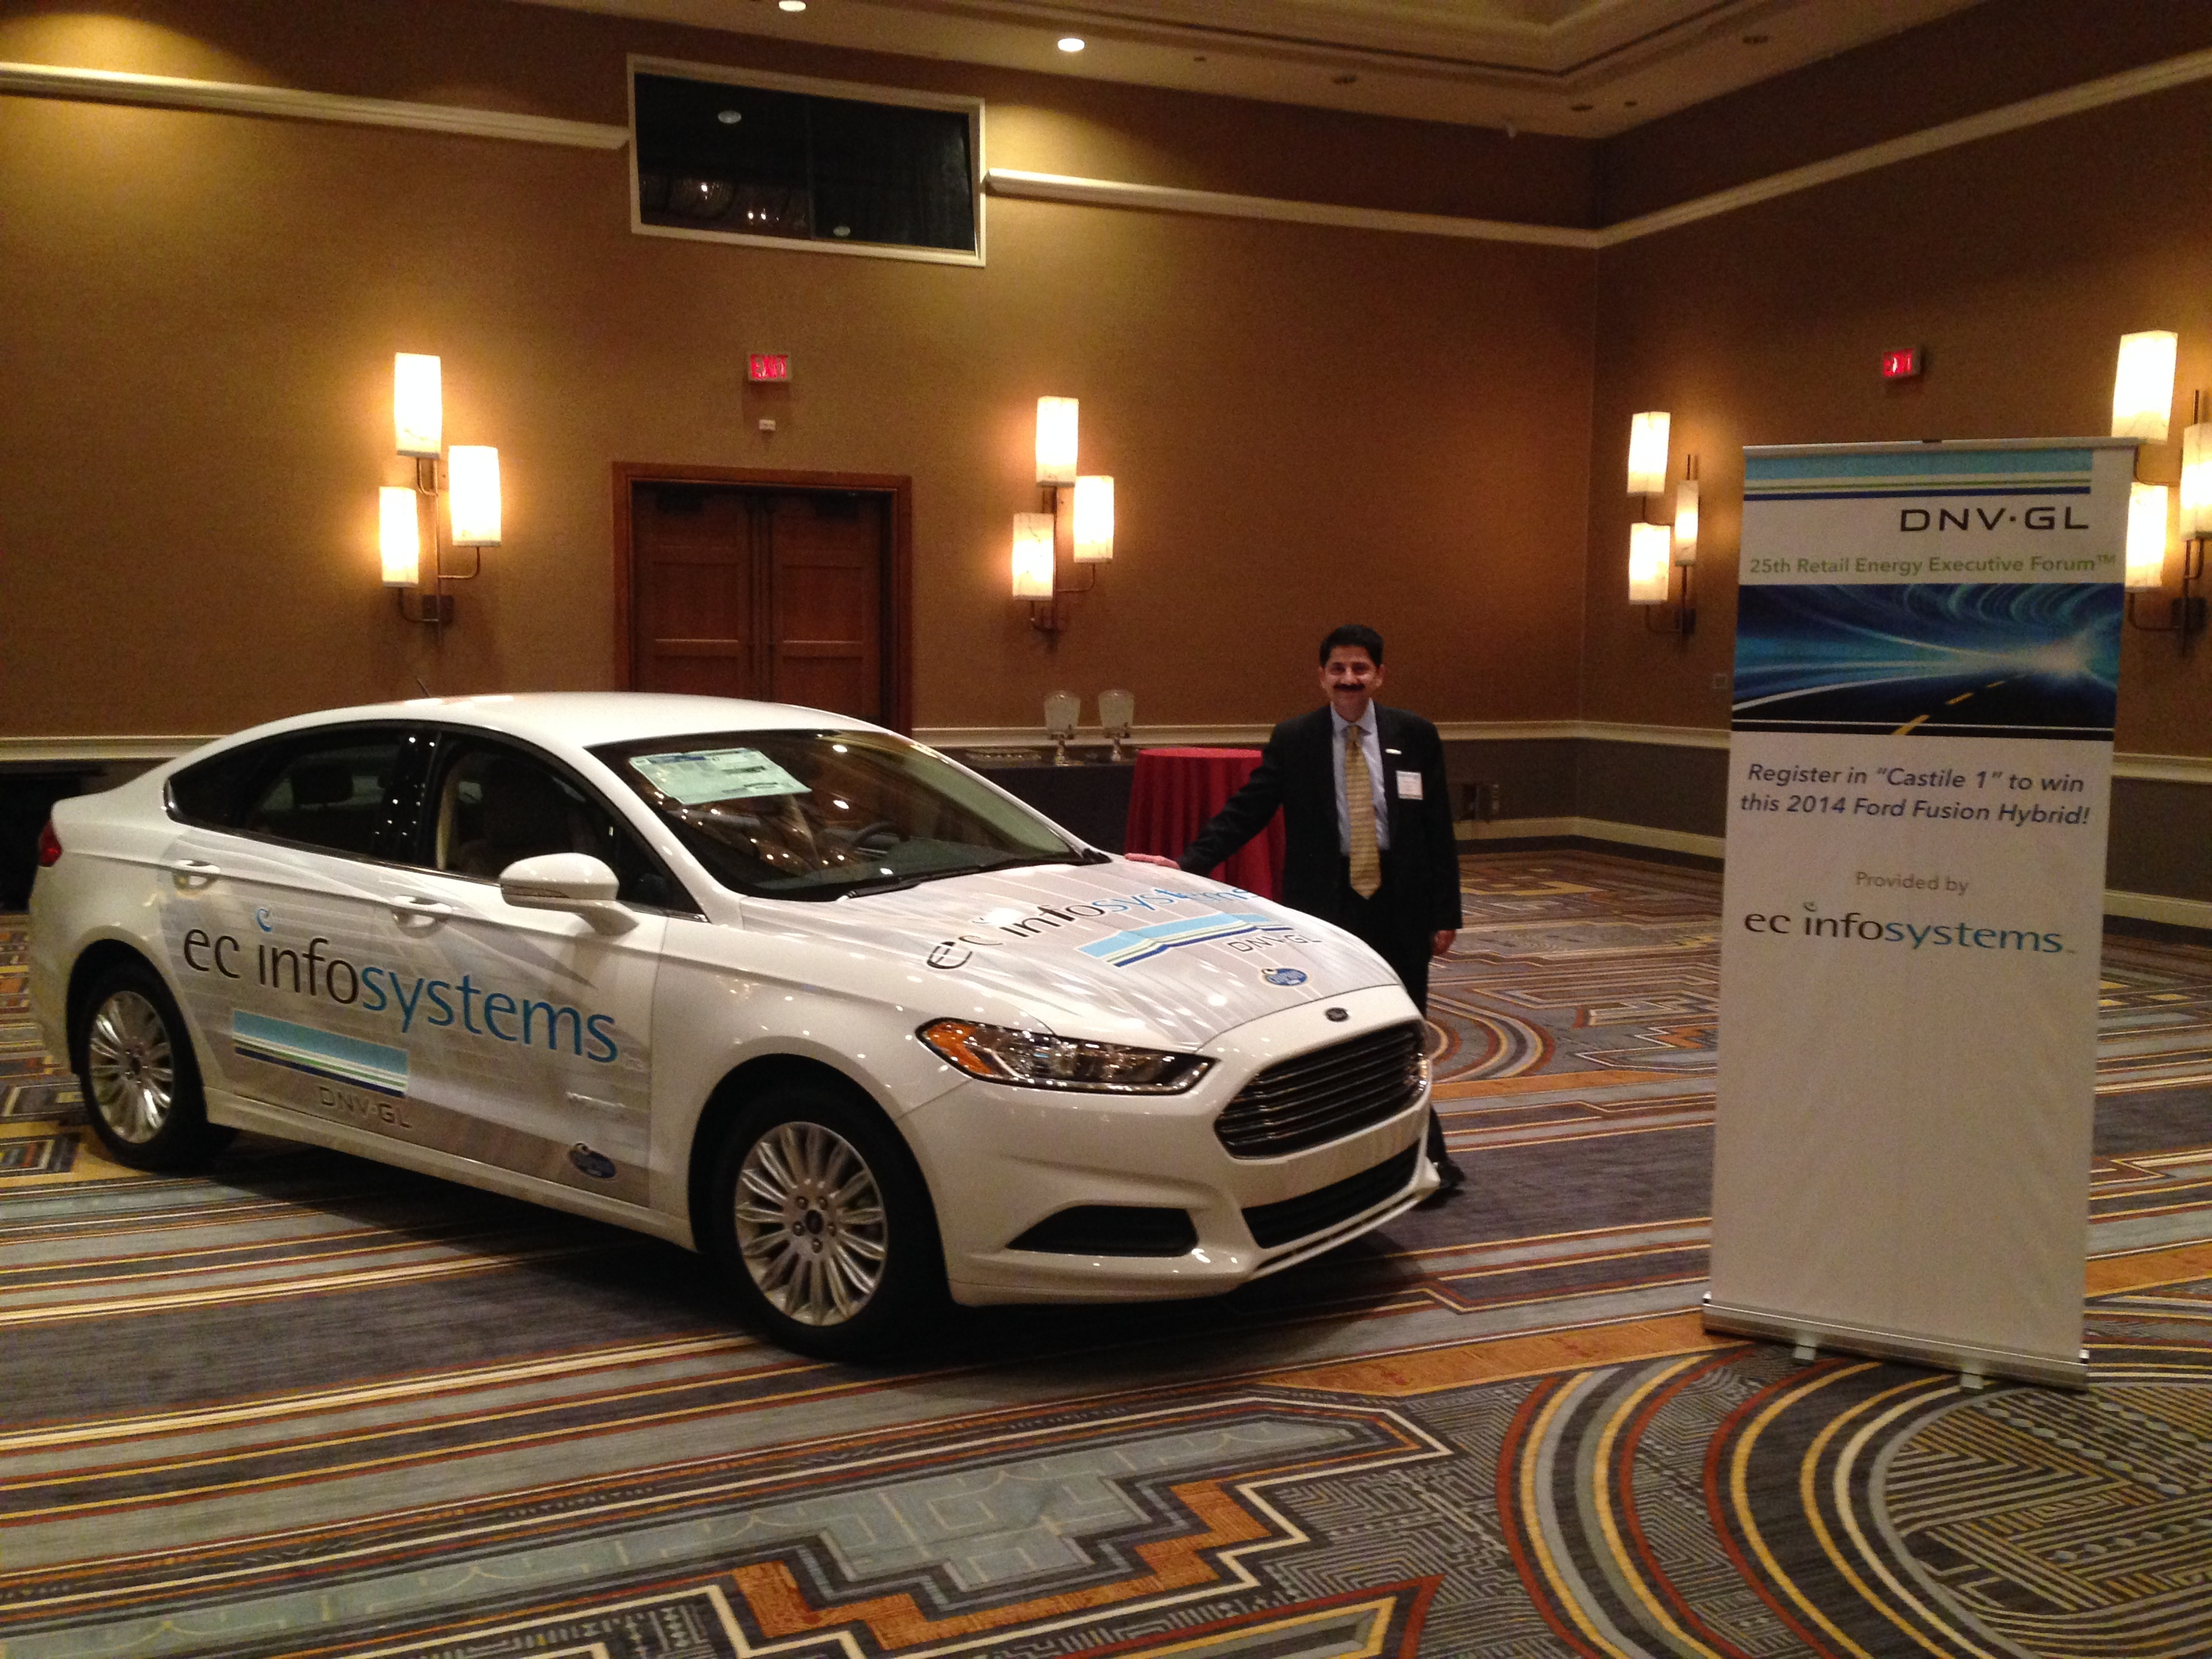 Ec Infosystems Announces Winner Of 2017 Dnv Gl Retail Executive Energy Forum Ford Fusion Hybrid Giveaway Business Wire